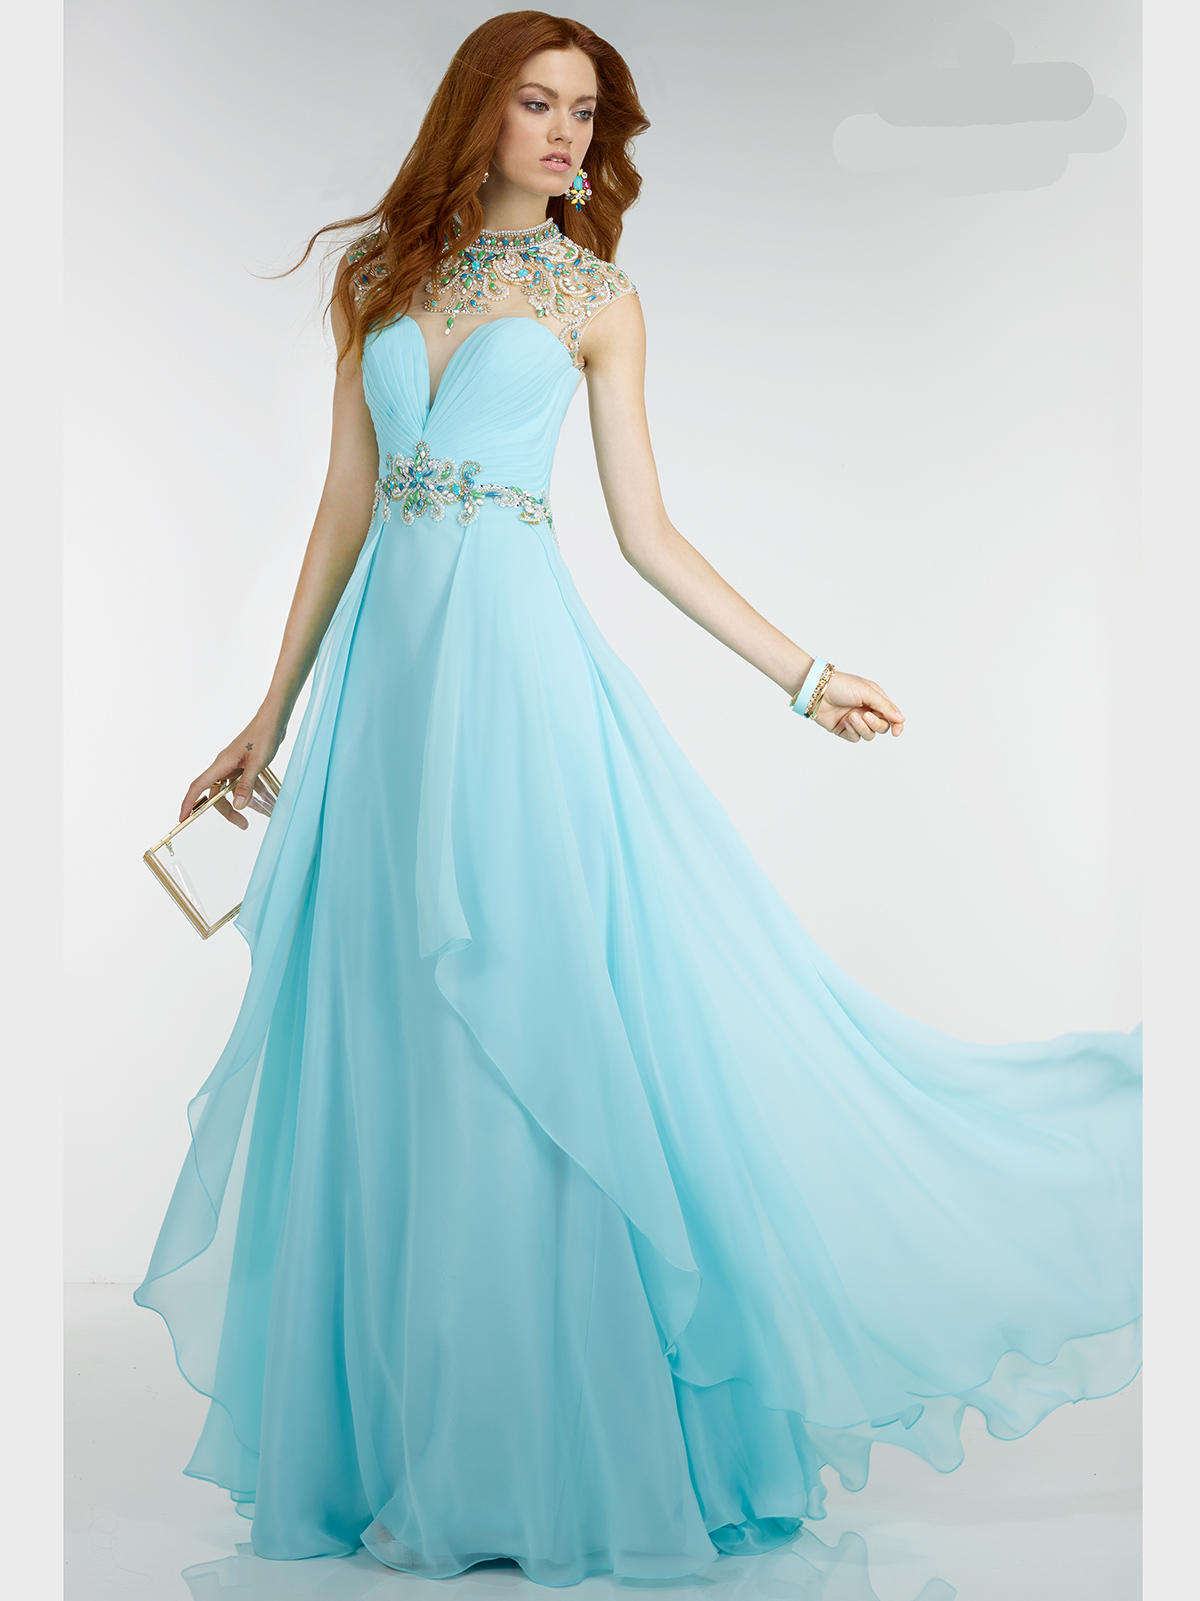 Carnival Prom Dresses - Bold Designs - DressProm.net